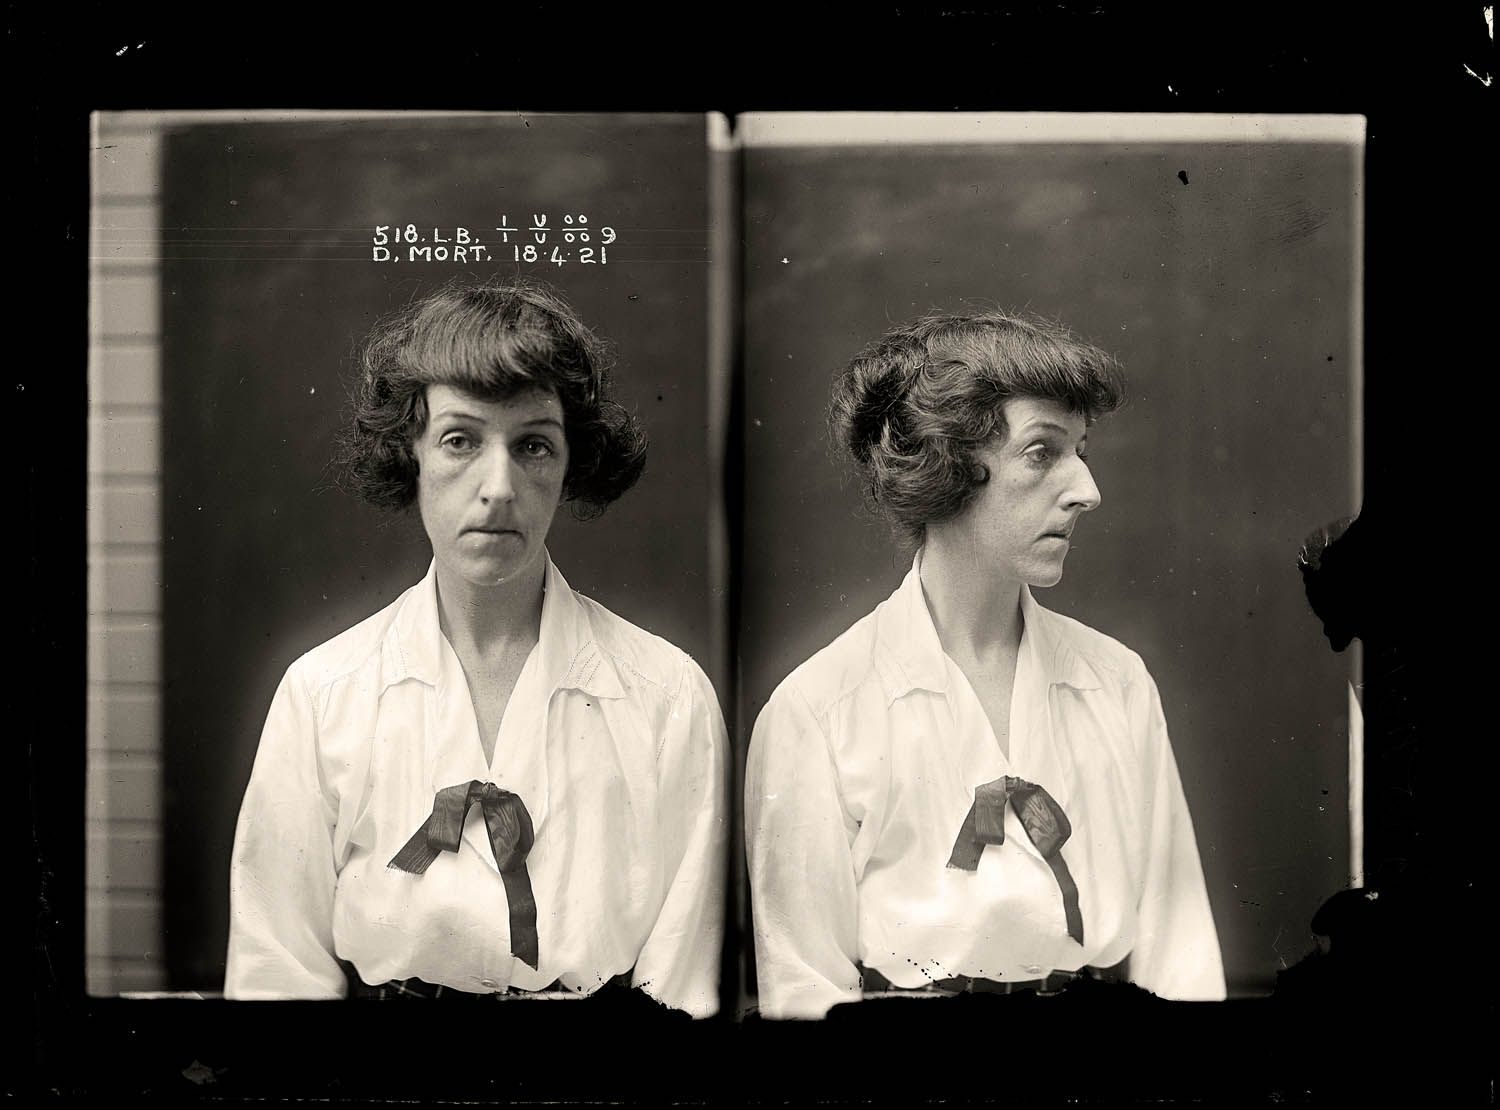 The vintage mugshots of shoplifters bank robbers and murderers from - Dorothy Mort 18 April 1921 Convicted Of Murder Mrs Dorothy Mort Was Having An Affair With Dashing Young Doctor Claude Tozer On 21 December 1920 Tozer